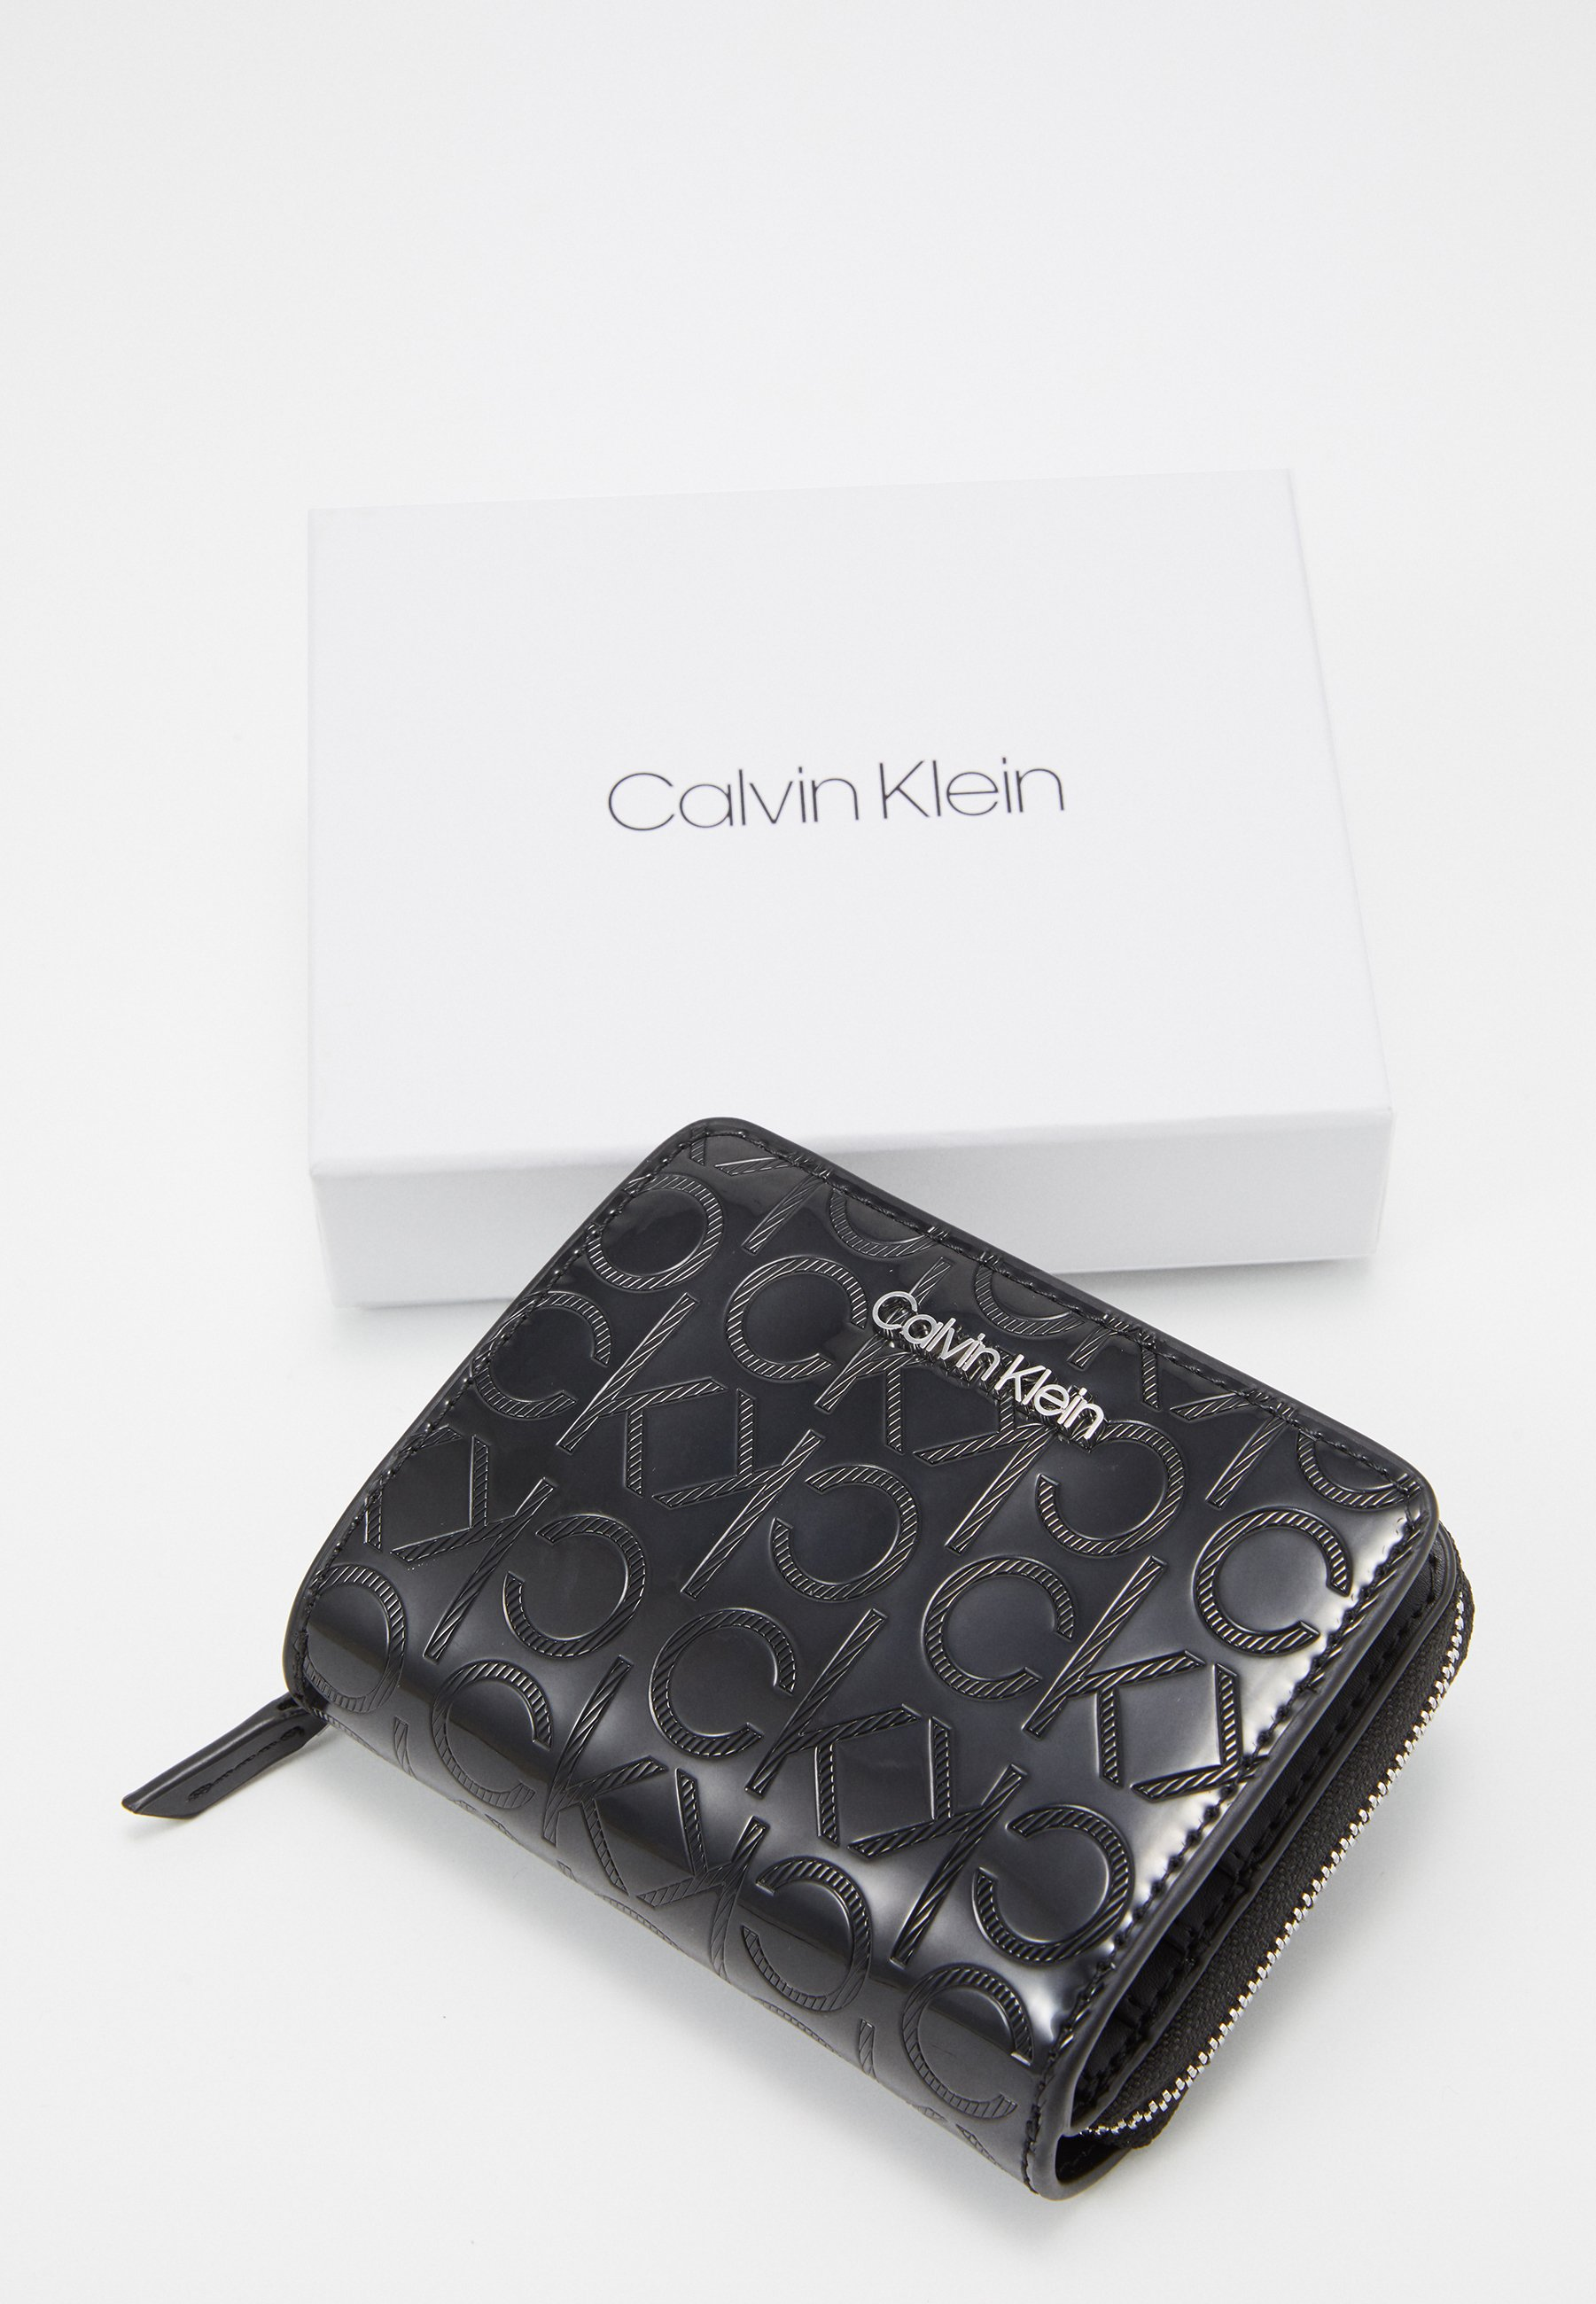 Inexpensive Popular And Cheap Accessories Calvin Klein MUST ZIP FLAP Wallet black i841OB8Lv 7fzlGYq9D